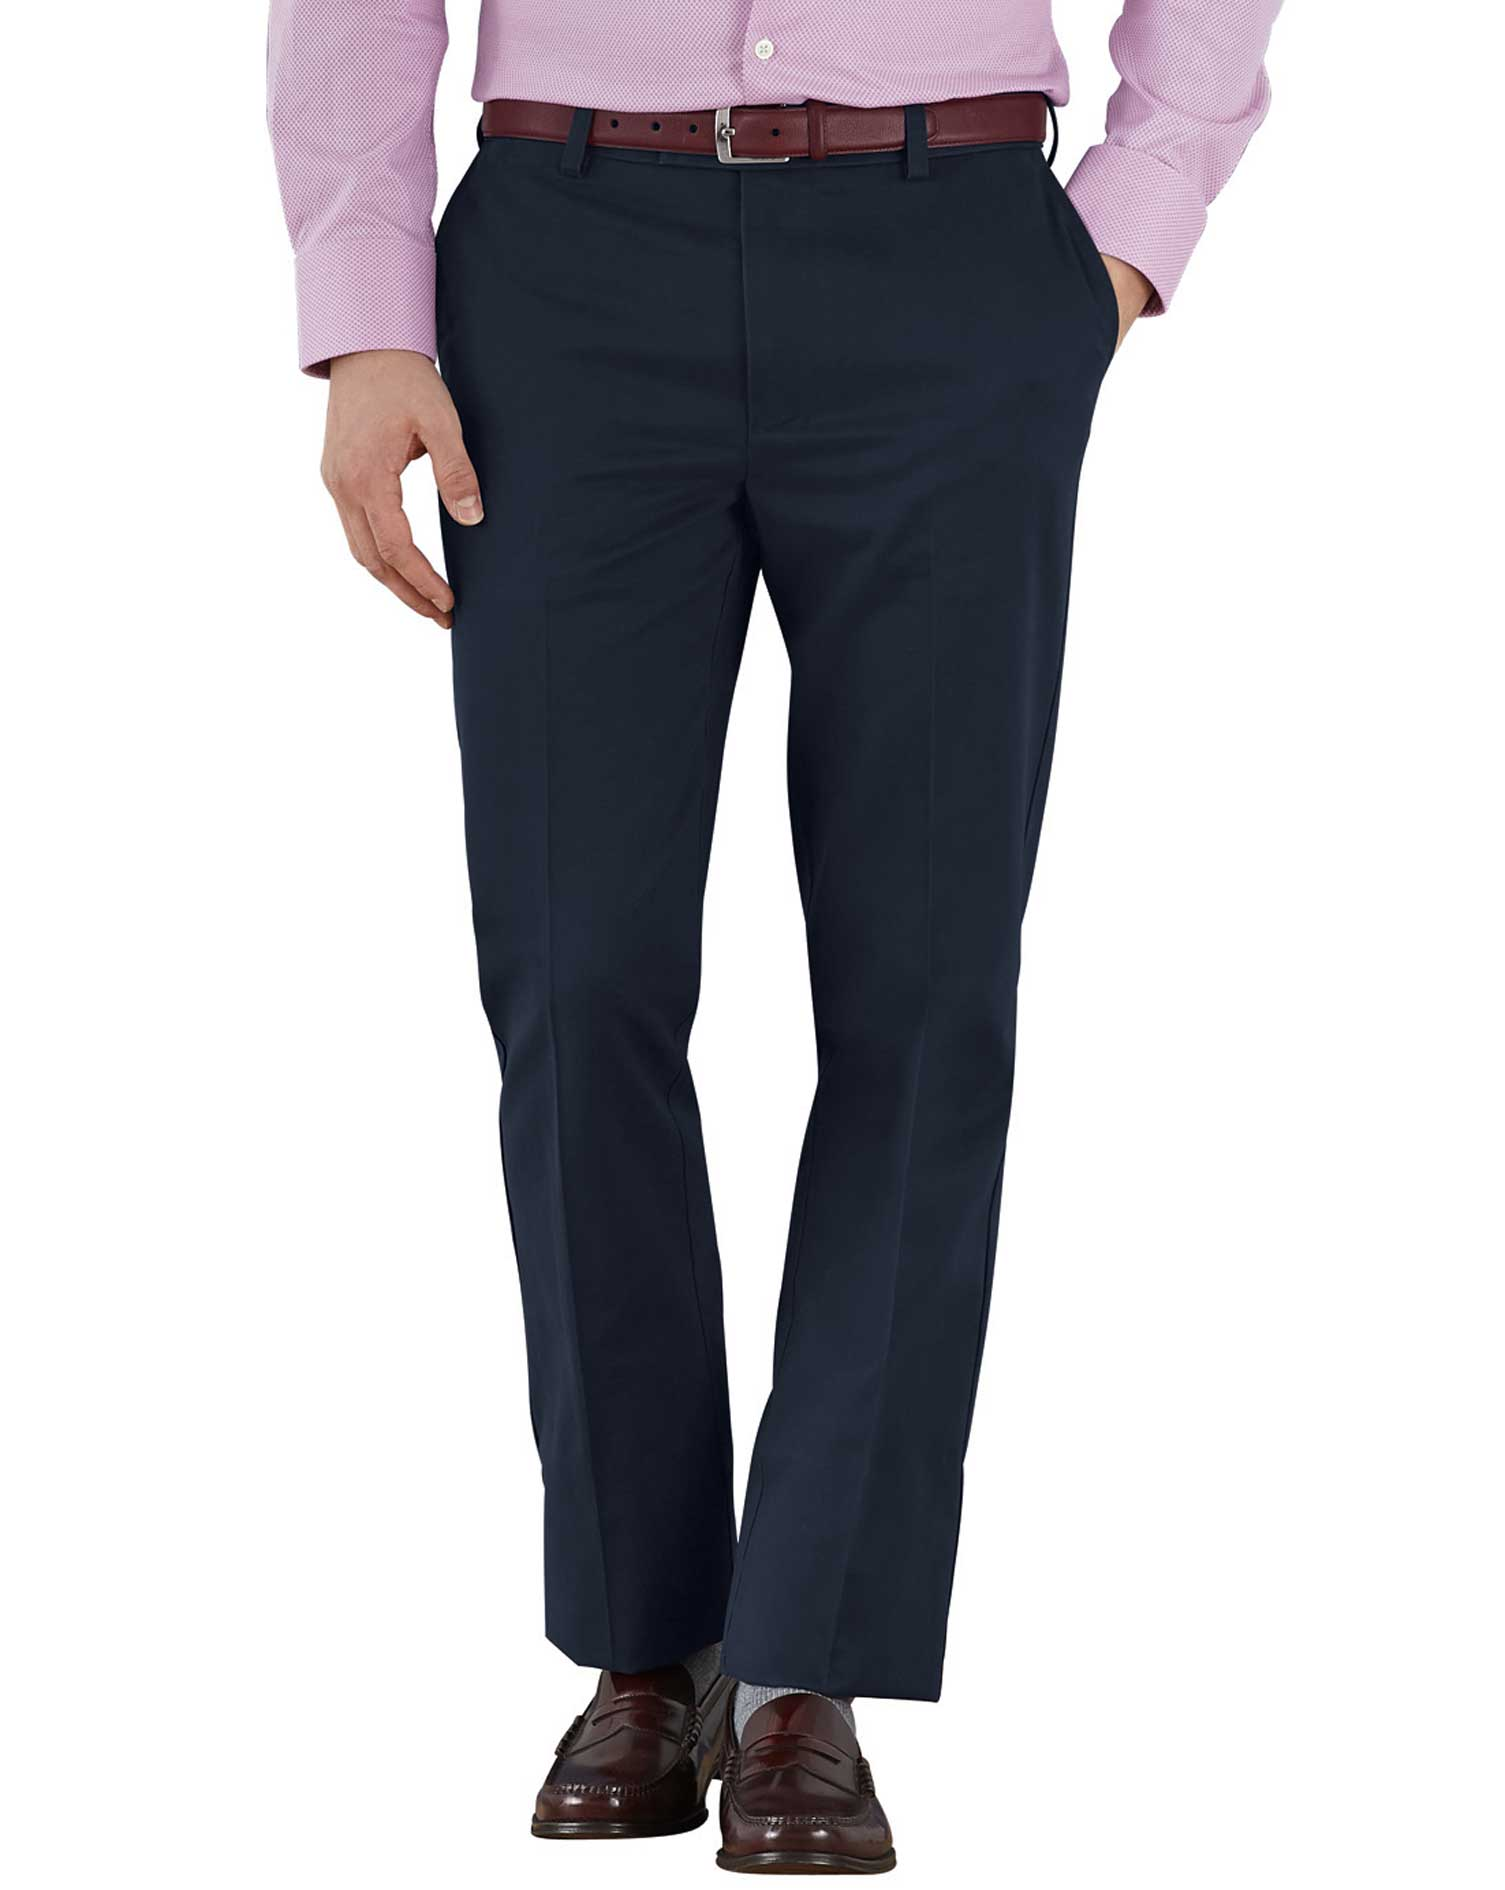 Navy Slim Fit Flat Front Non-Iron Cotton Chino Trousers Size W34 L34 by Charles Tyrwhitt